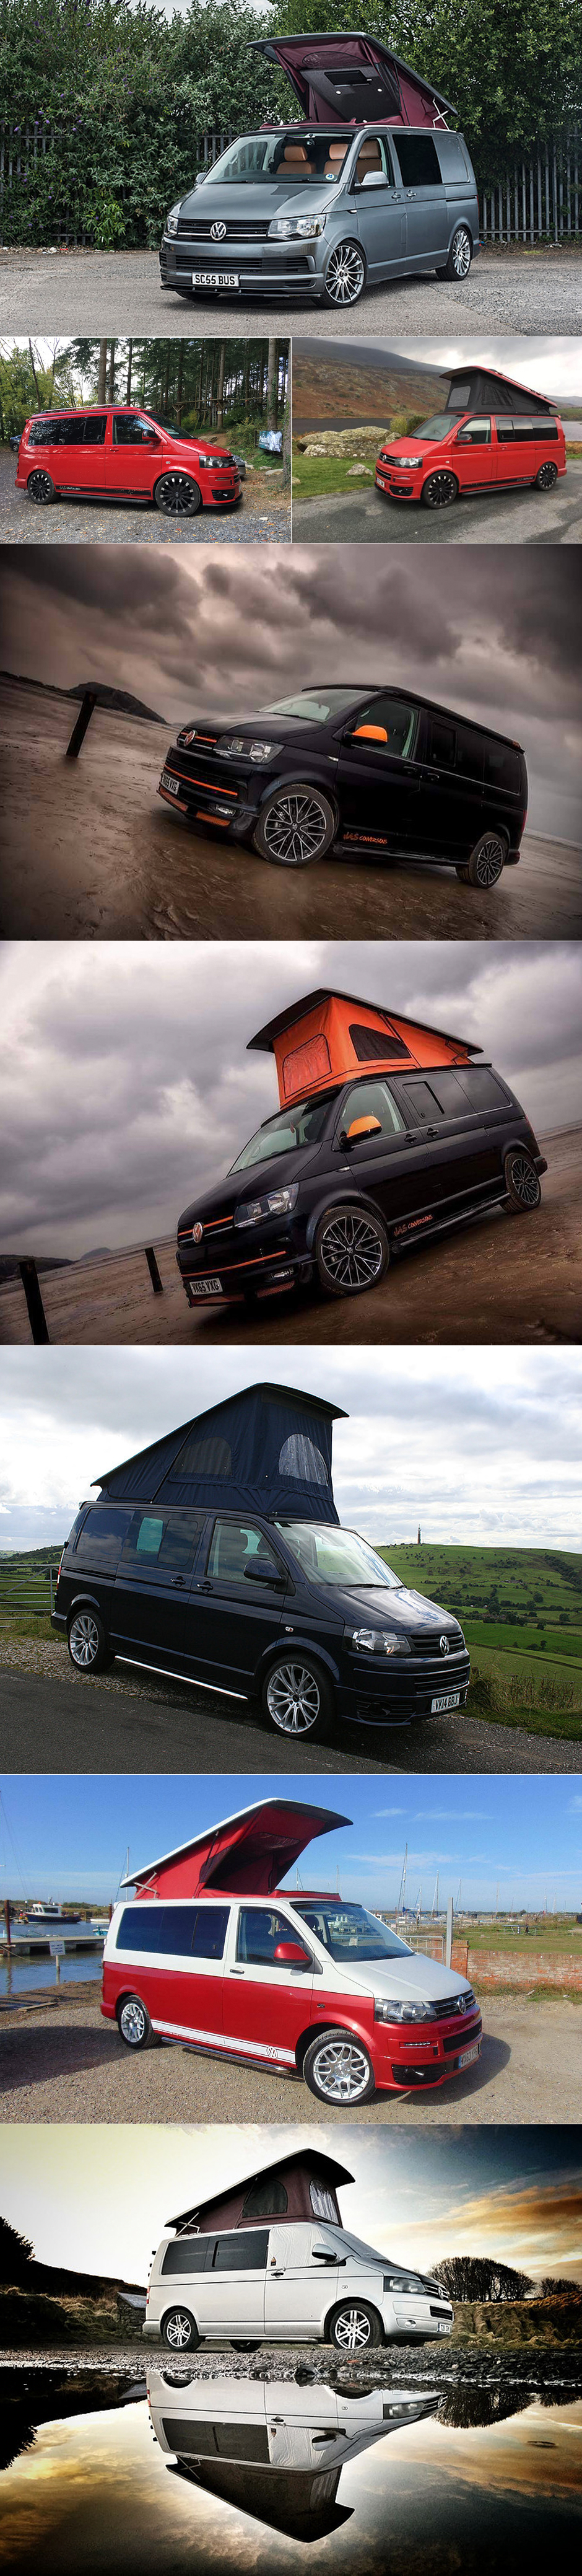 vw t5 t6 skyline poptop roof xtremevan conversions